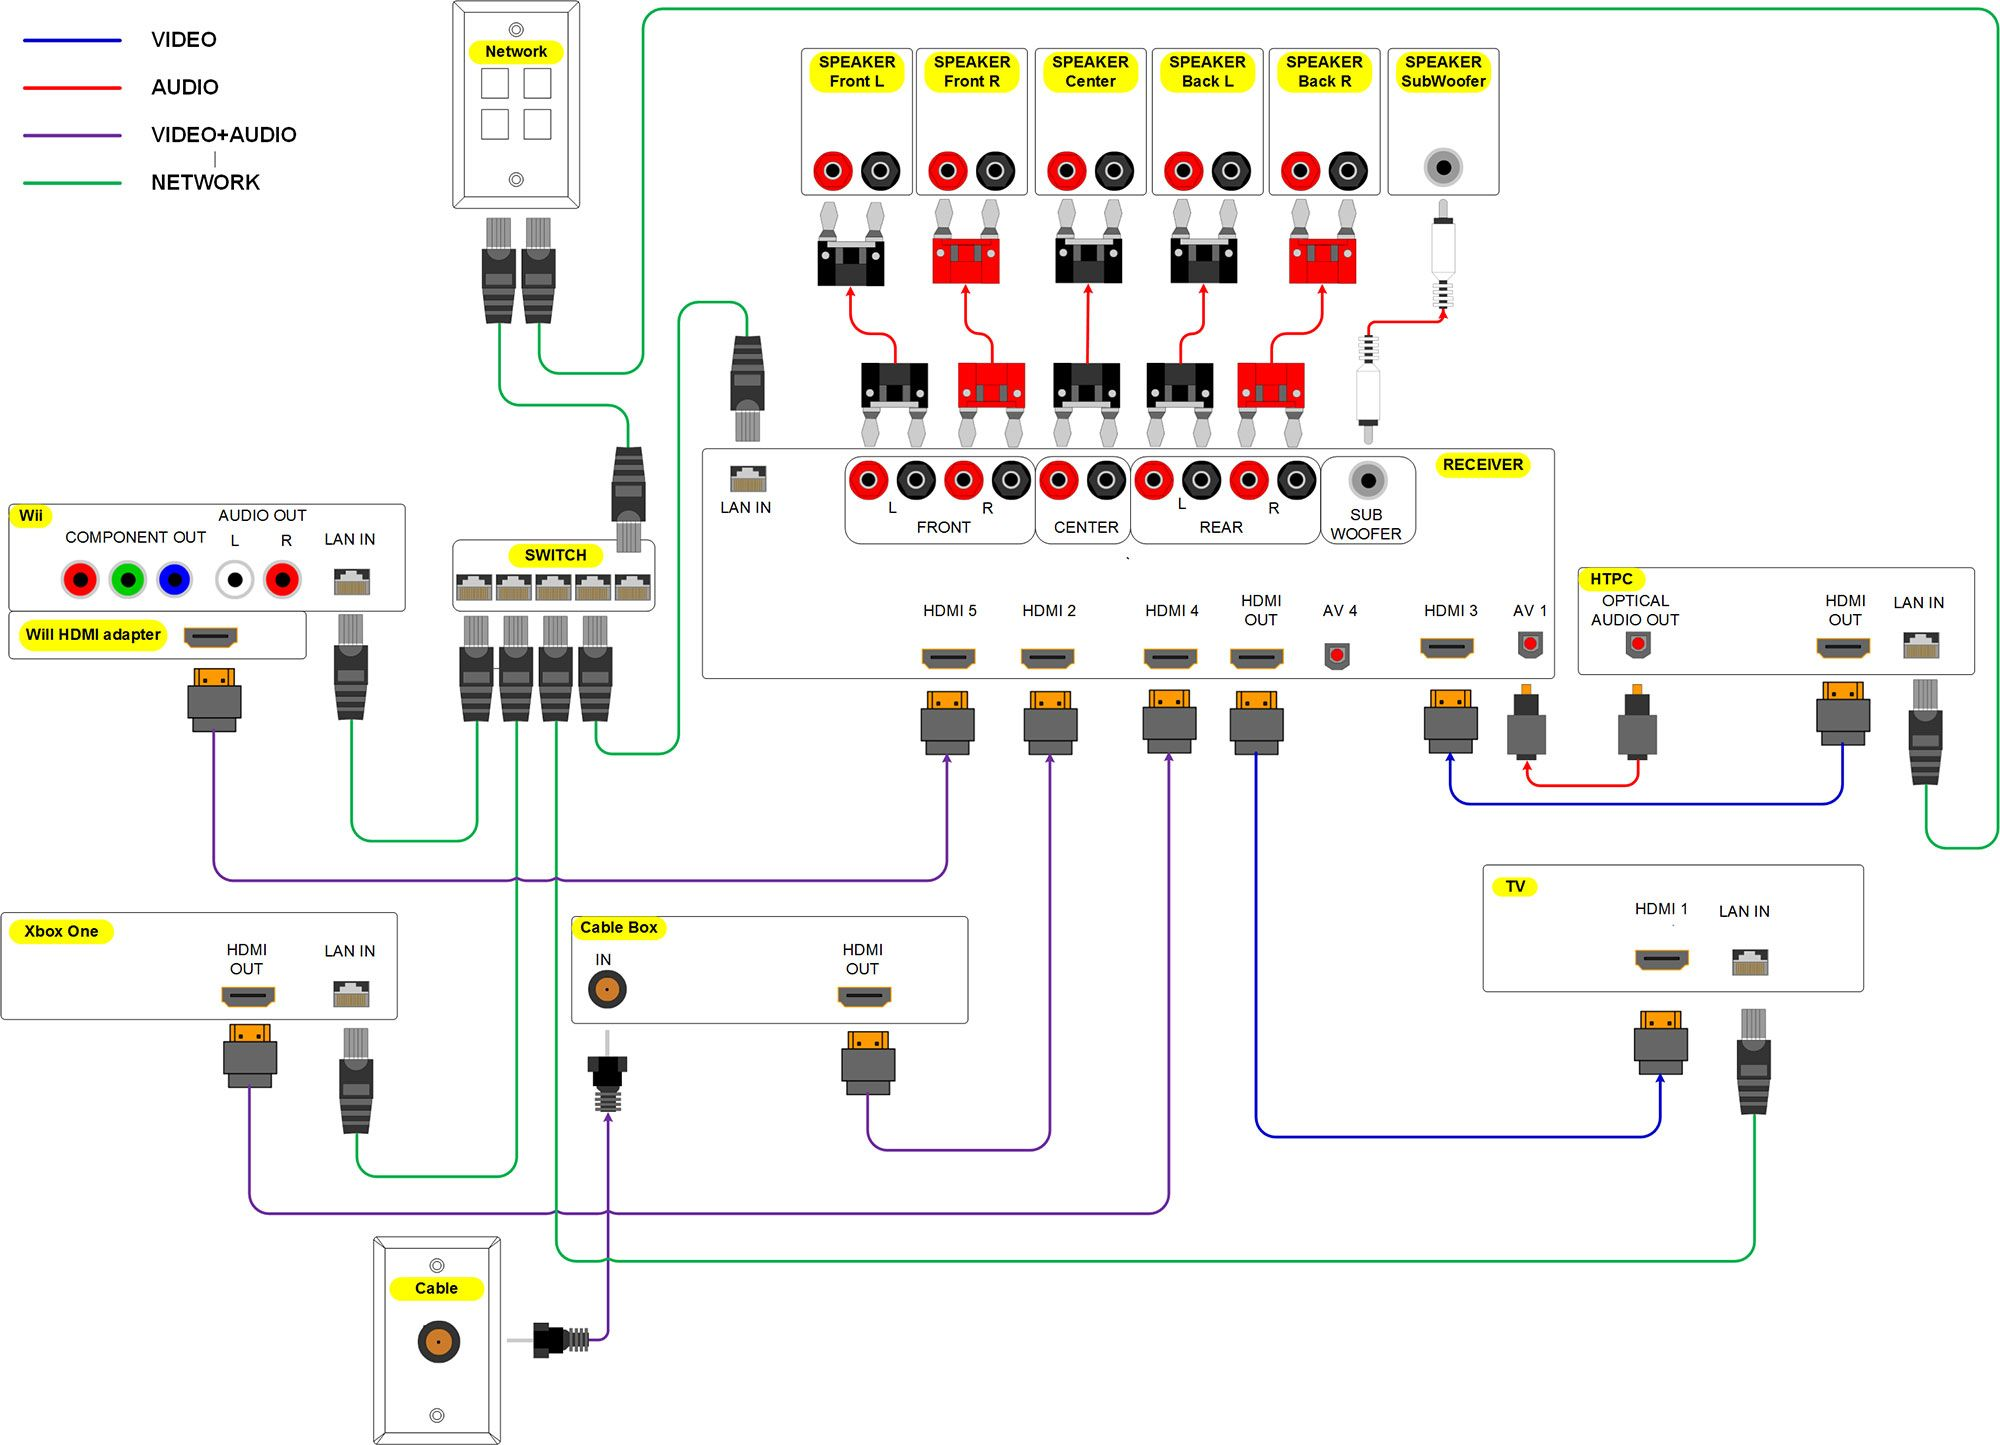 Home Theater Network Diagram 6 Pin Bt Plug Wiring Click It To See The Big 2000 Pixel Wide